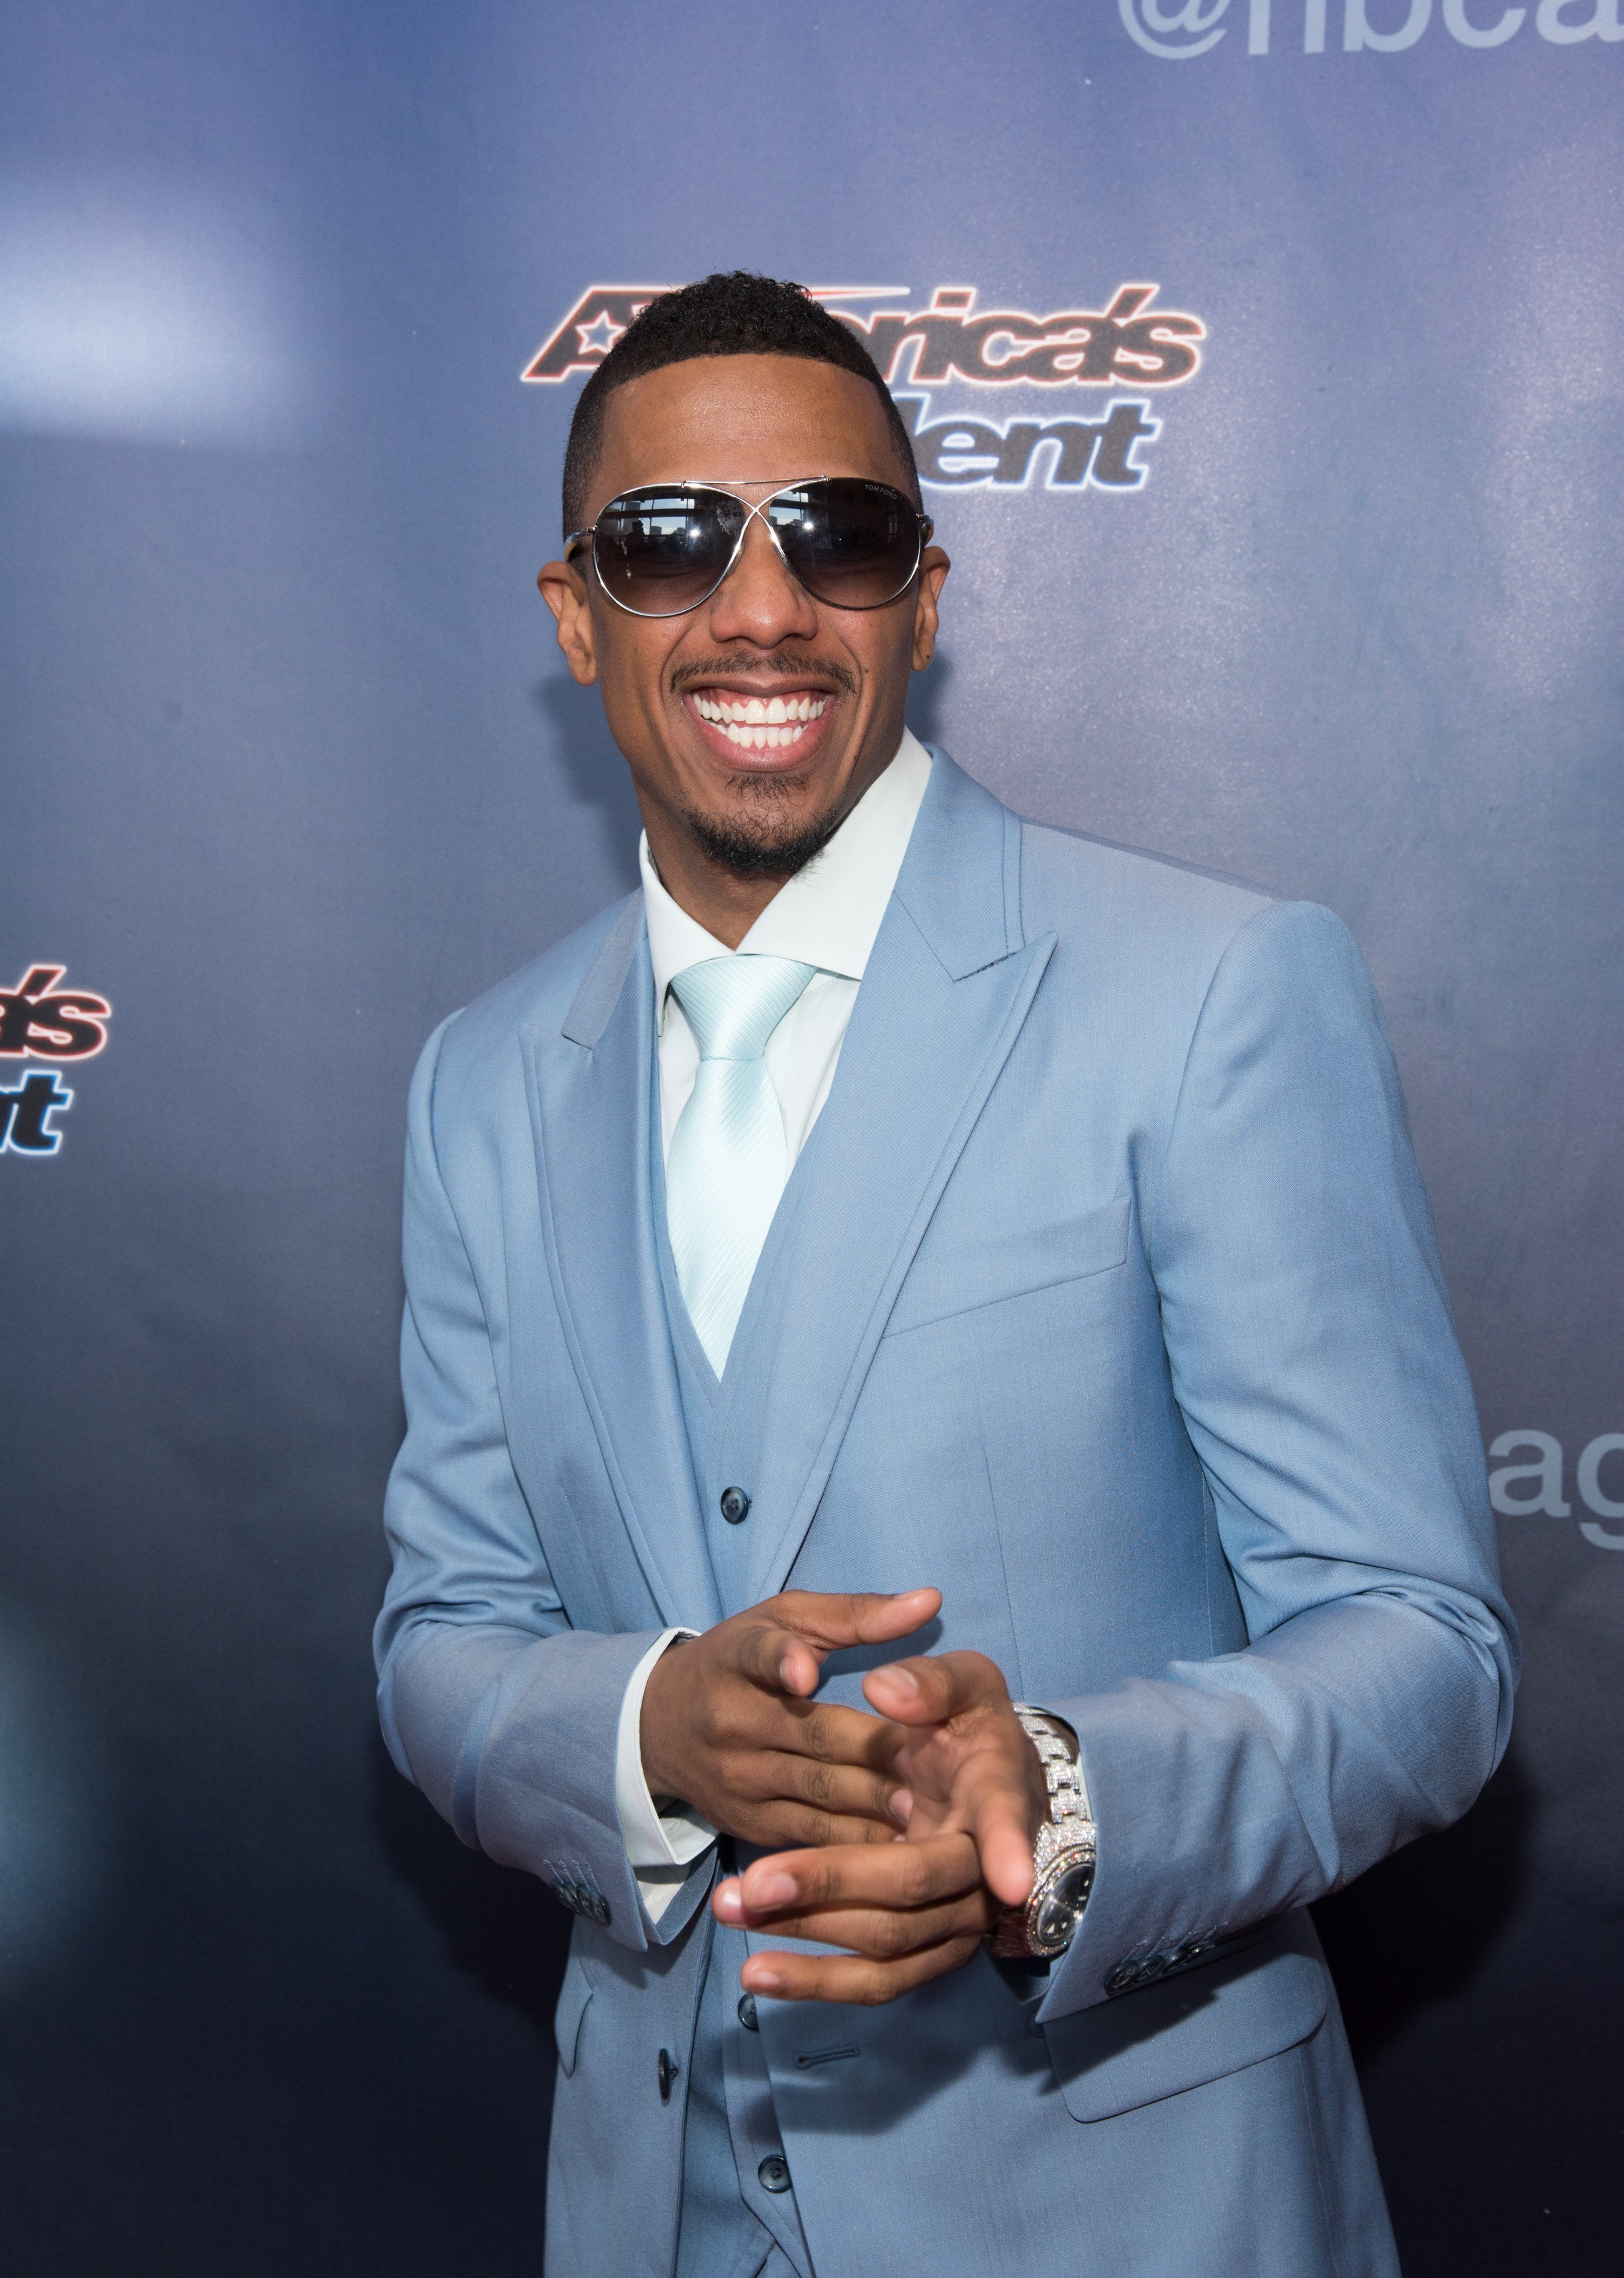 """Nick Cannon arriving at the """"America's Got Talent"""" Season 10 red carpet in New Jersey in March 2015. 